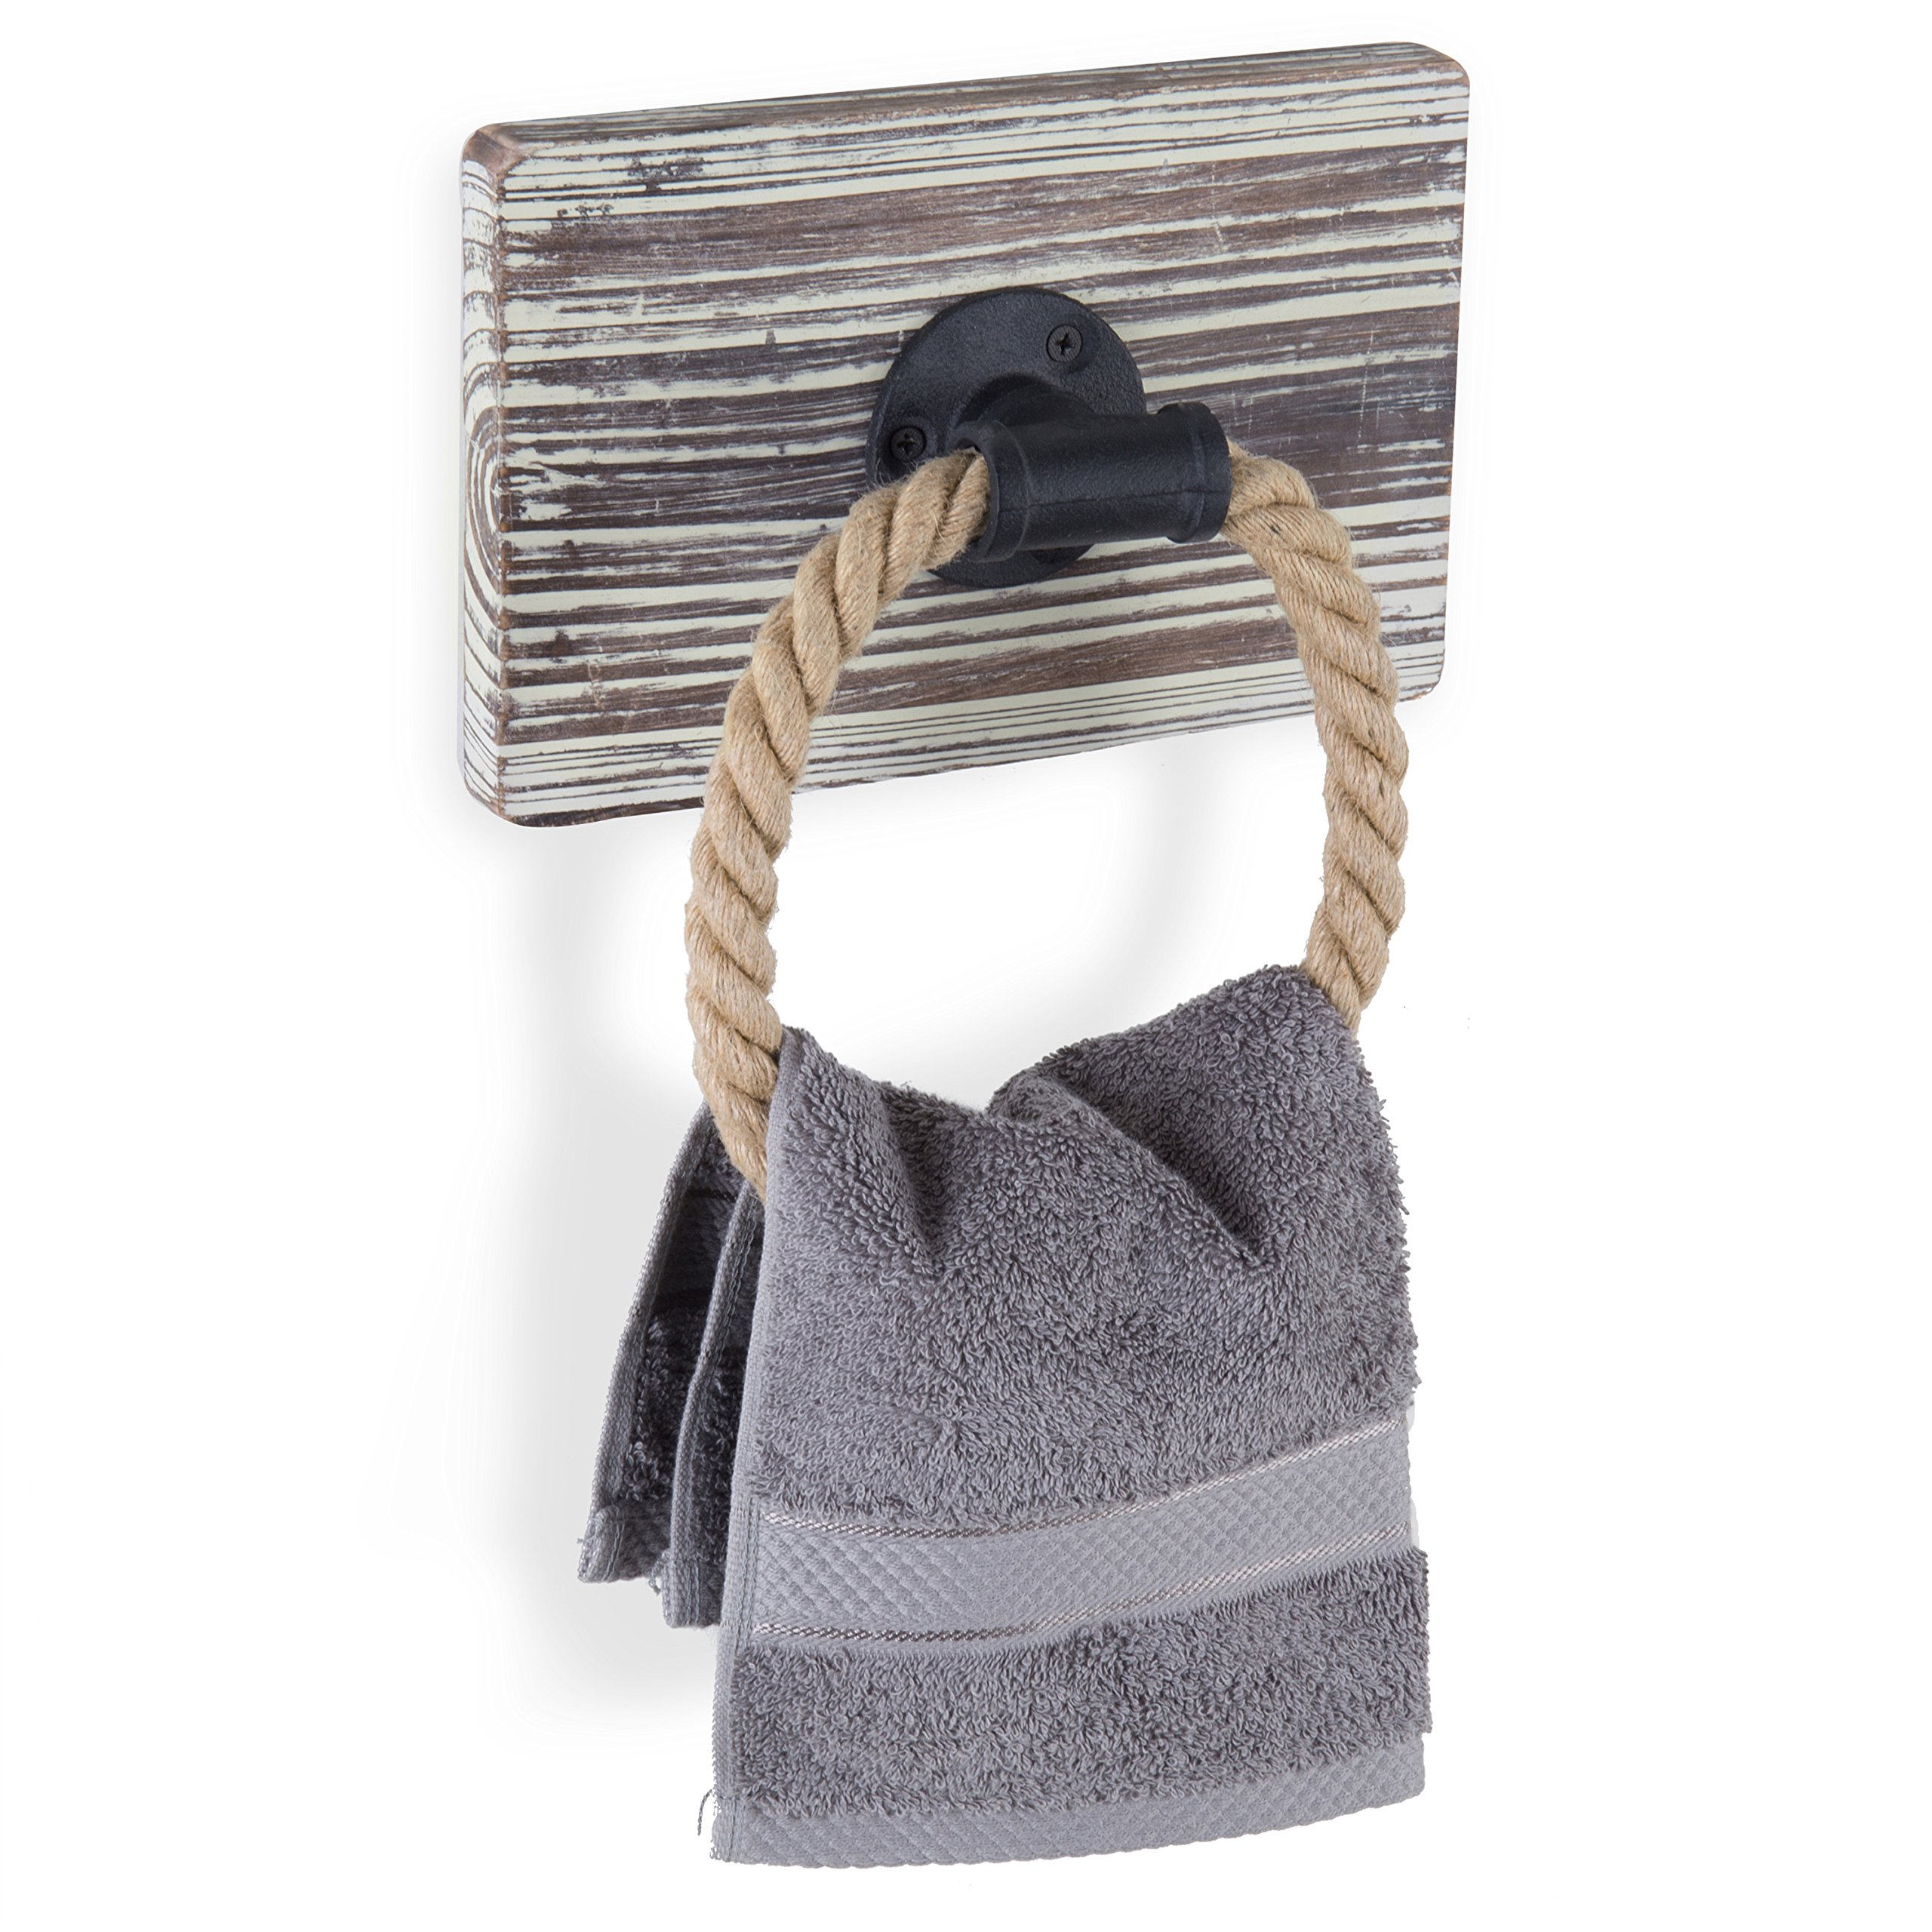 MyGift Rustic-Industrial Wall-Mounted Torched Wood & Rope Towel Ring by MyGift